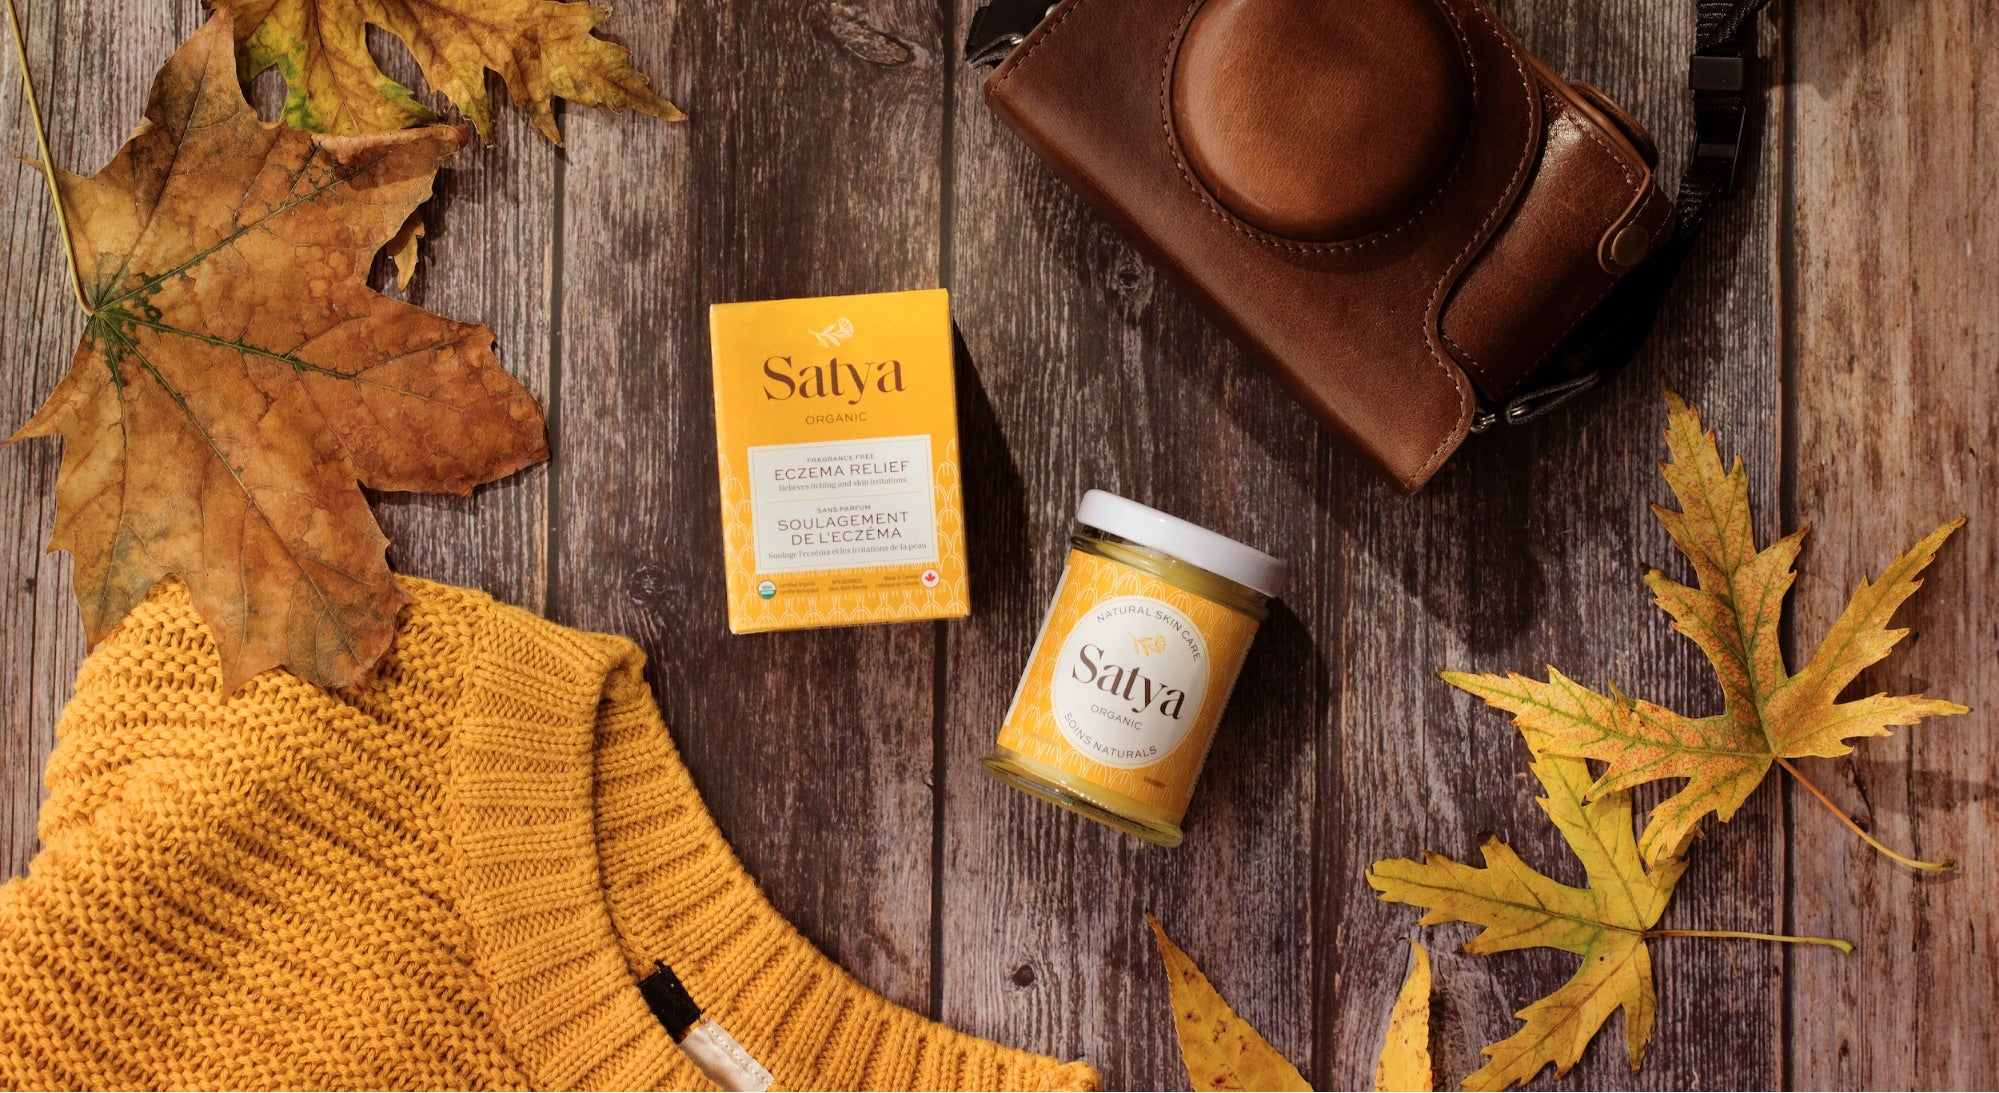 a flatlay of Satya products against a rustic, automnal backdrop featuring leaves, a camera and a yellow sweater